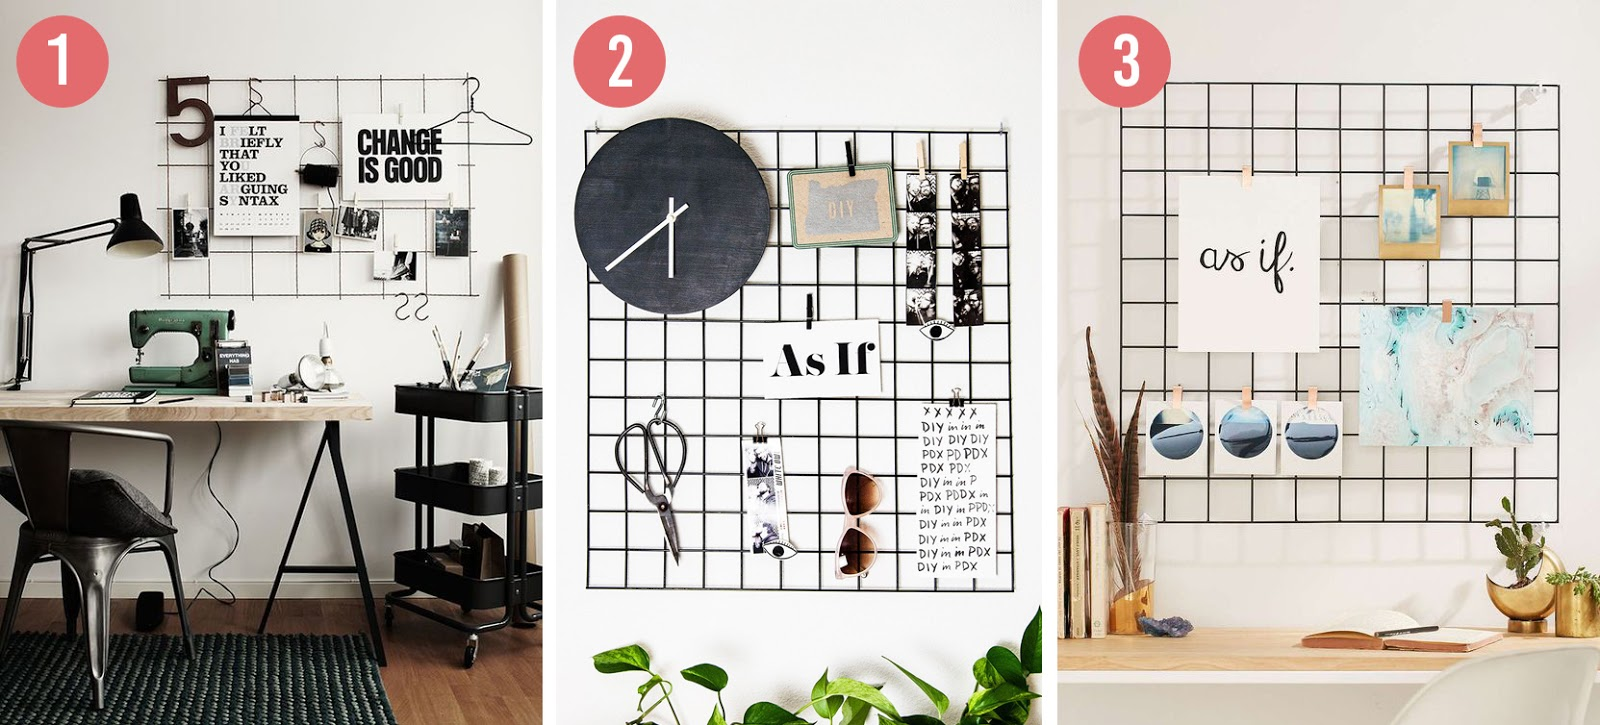 Eigen Bureau Maken Diy Wandrek Wall Grid The Budget Life De Beste Tips Om